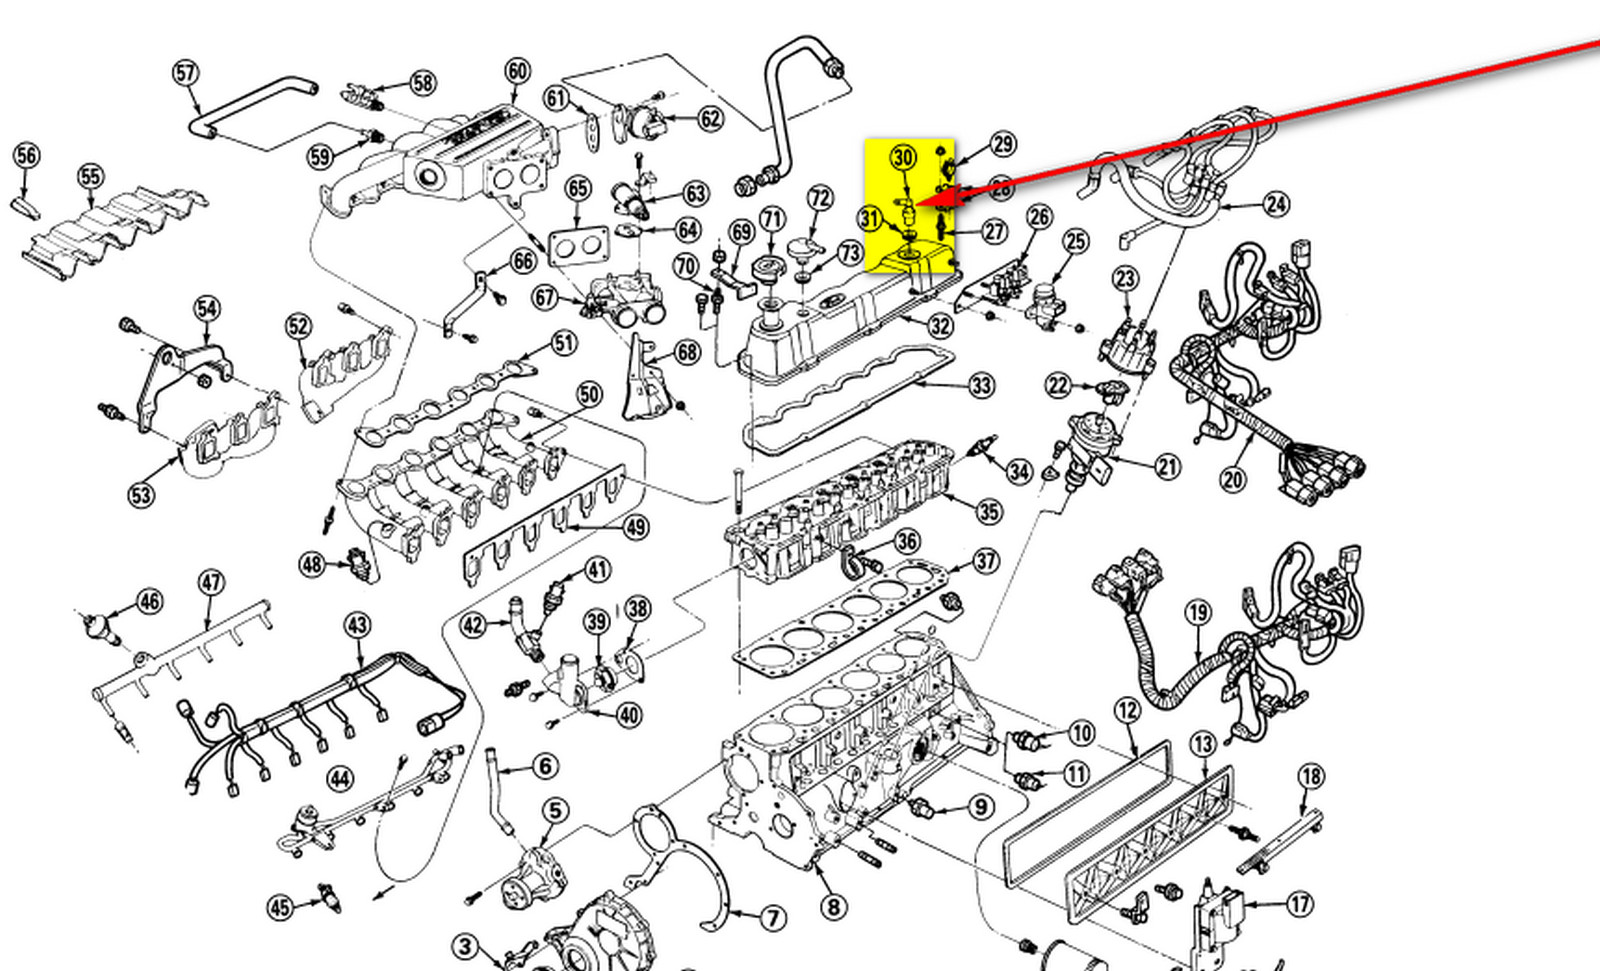 camaro 3800 series 2 engine diagram  camaro  get free